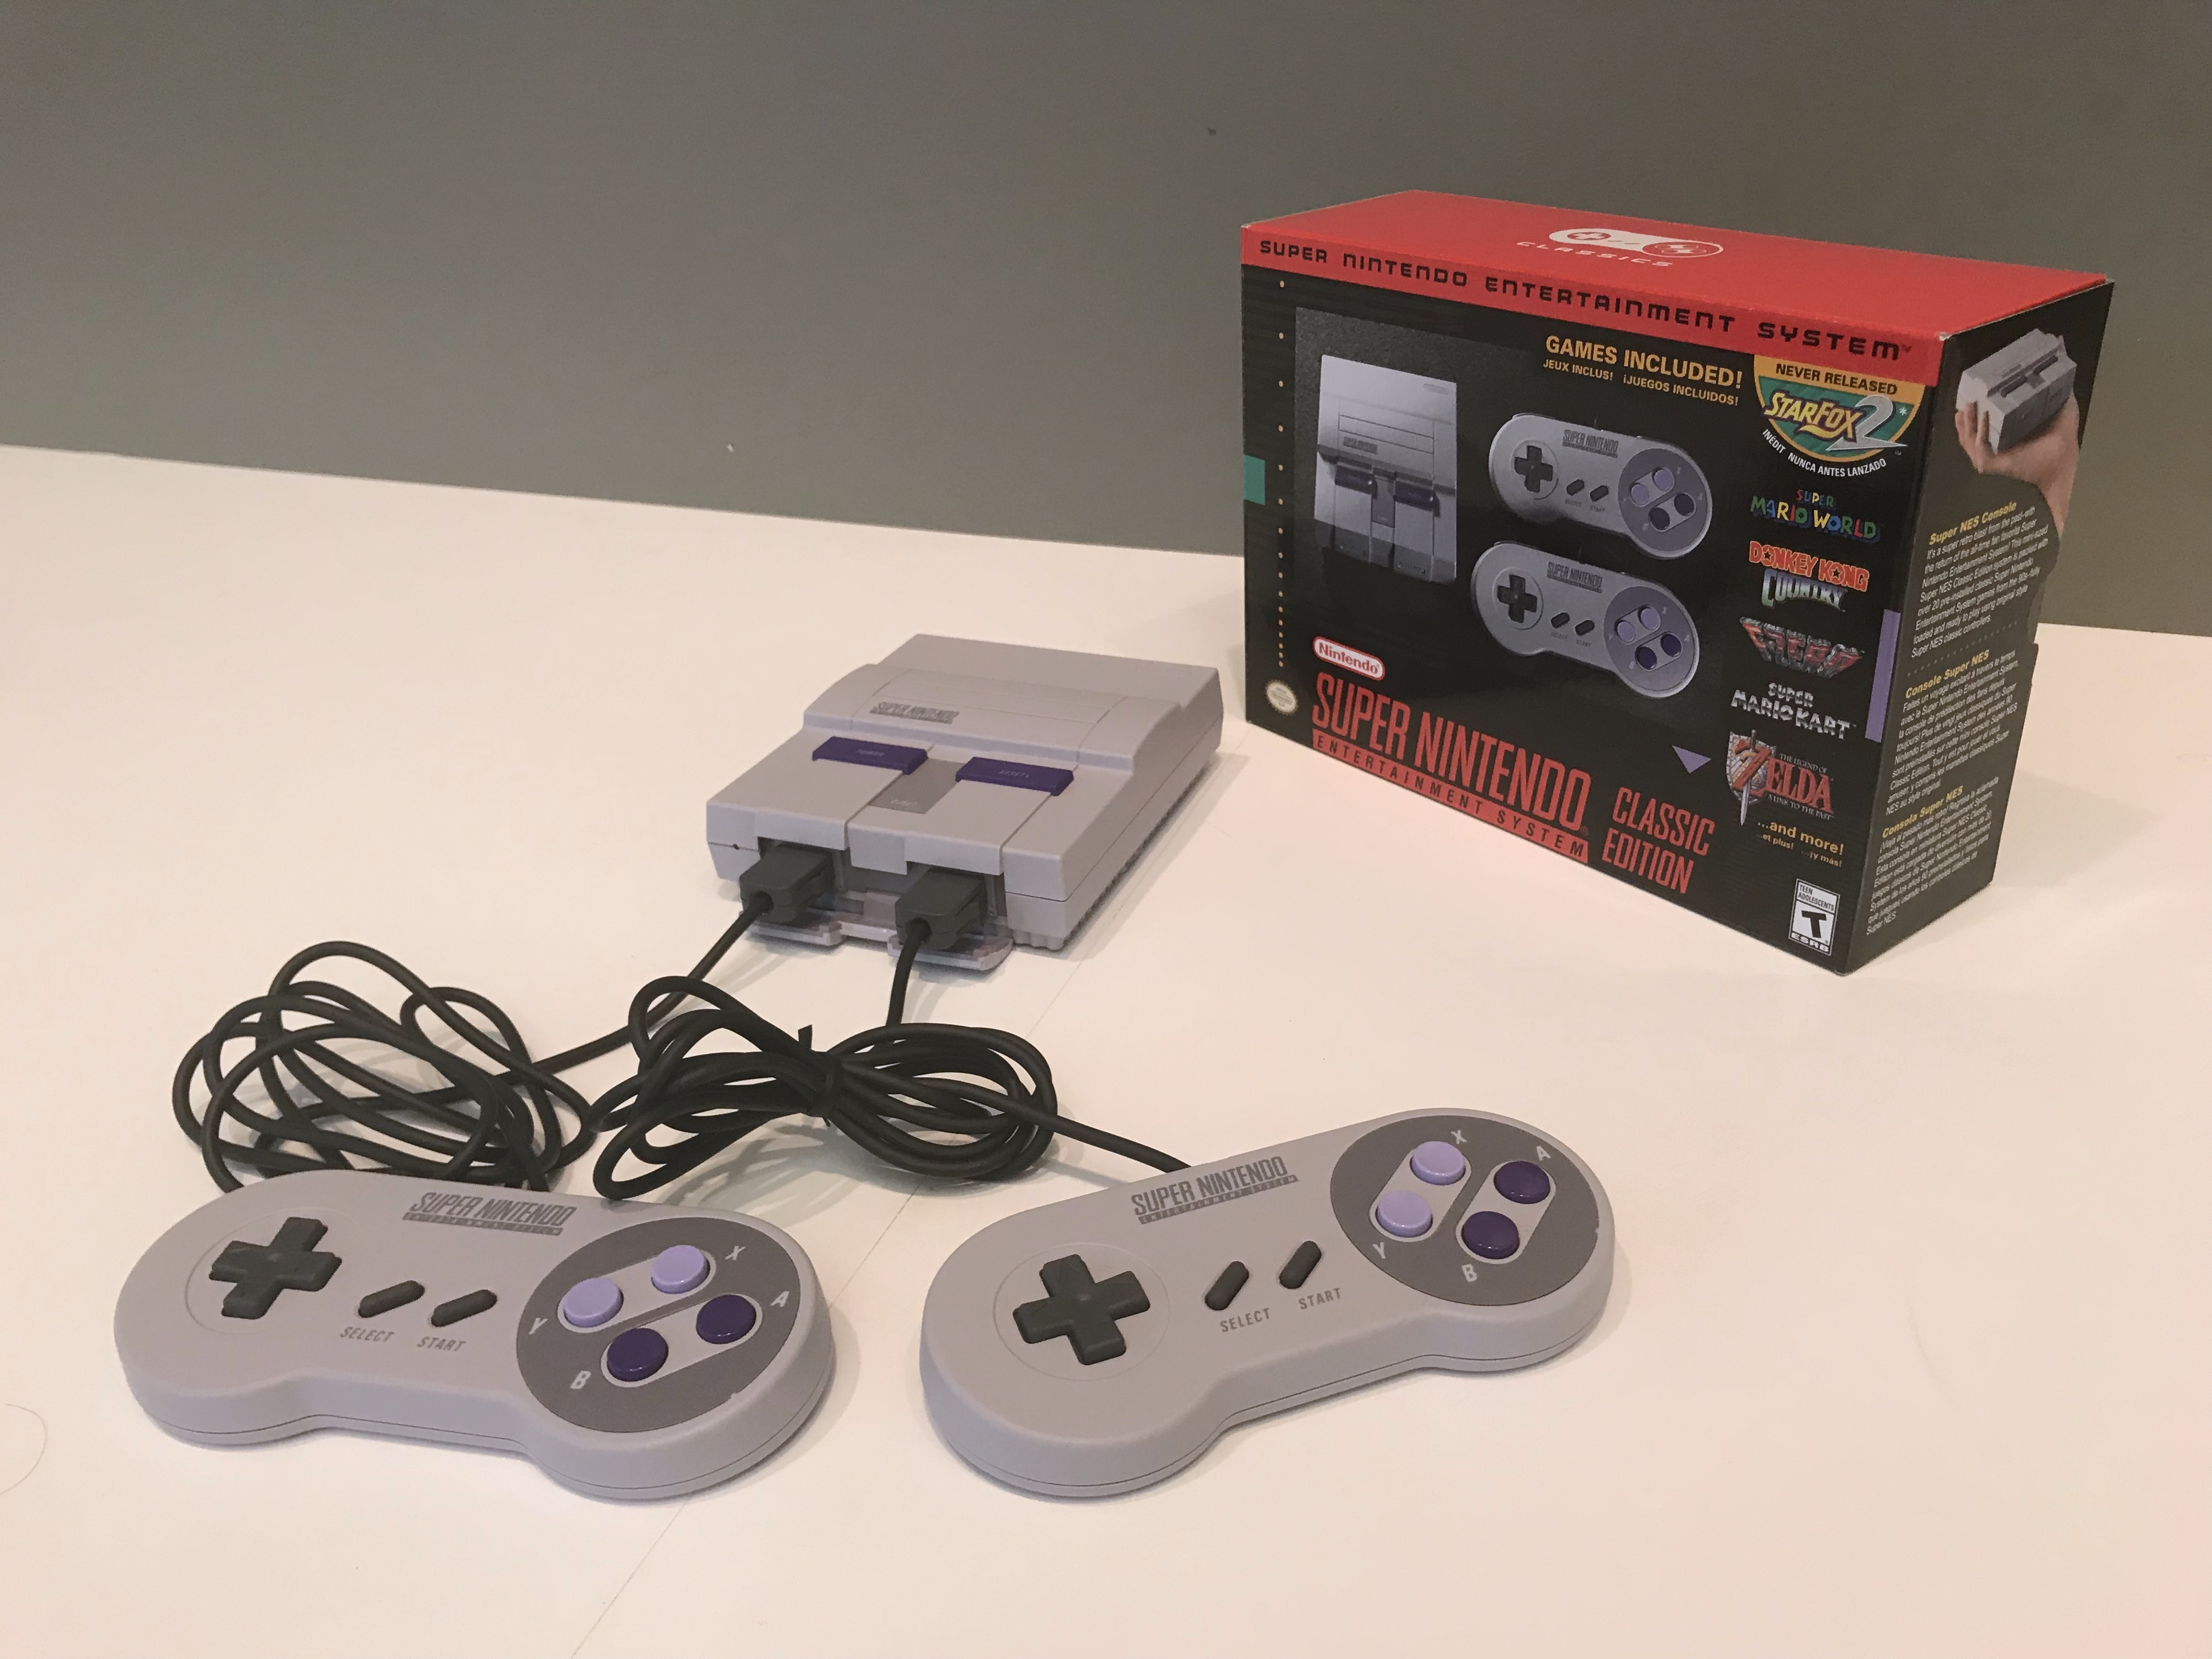 SNES Classic Pre-order Started At Target